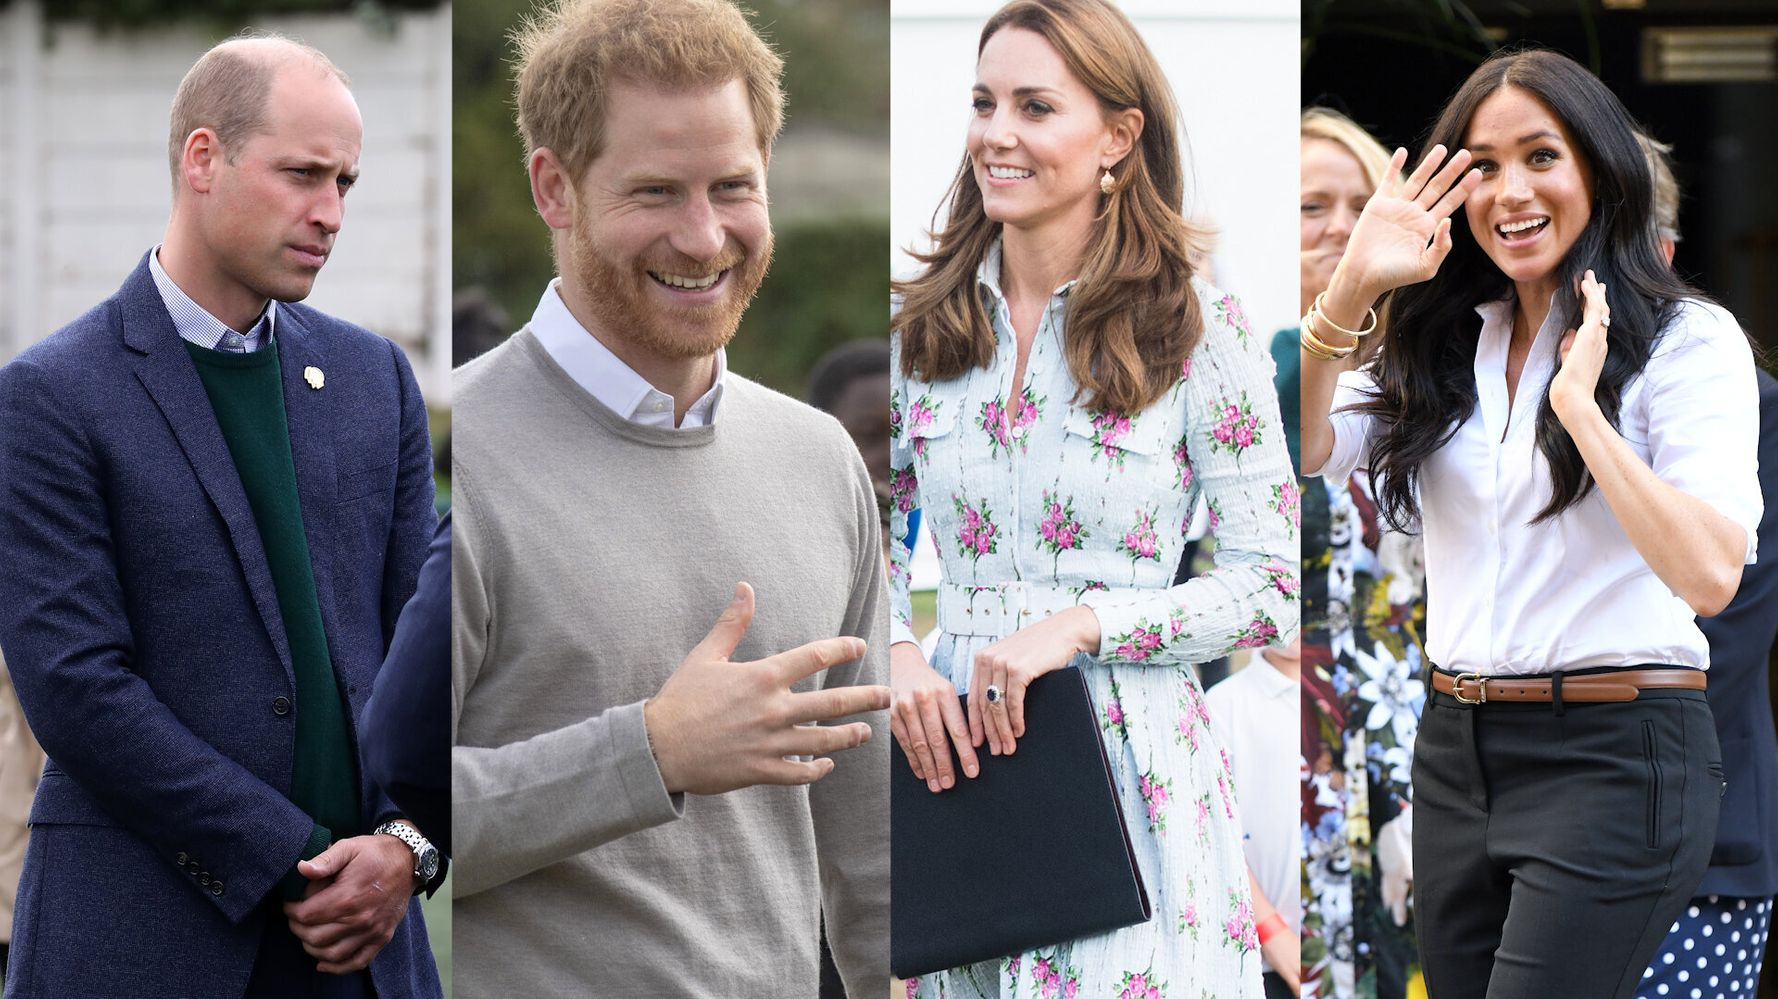 As Meghan Launches Her SmartWorks Collection, We Look At The Causes The Royals Love To Champion